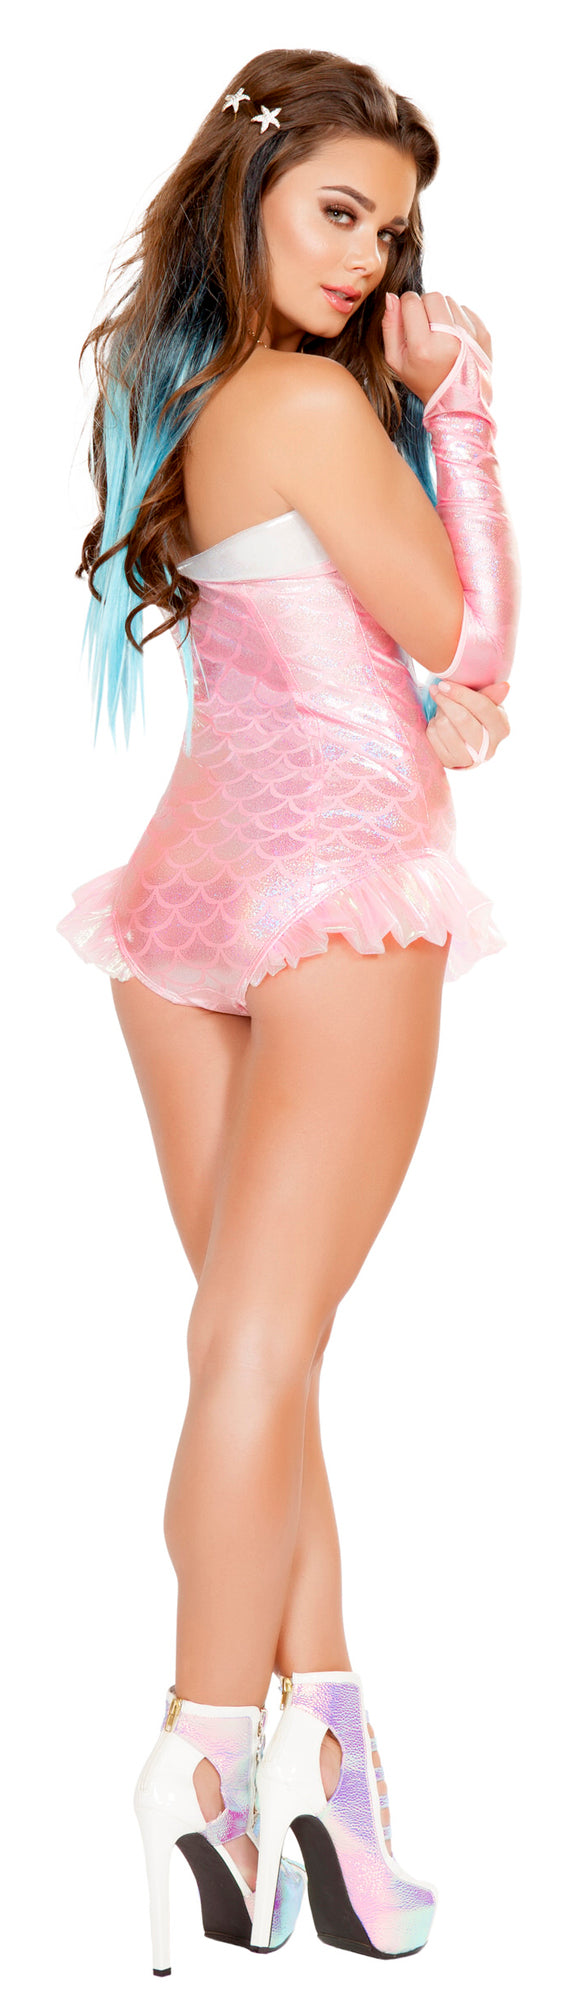 RM-4661 Pink Mermaid Romper Costume back